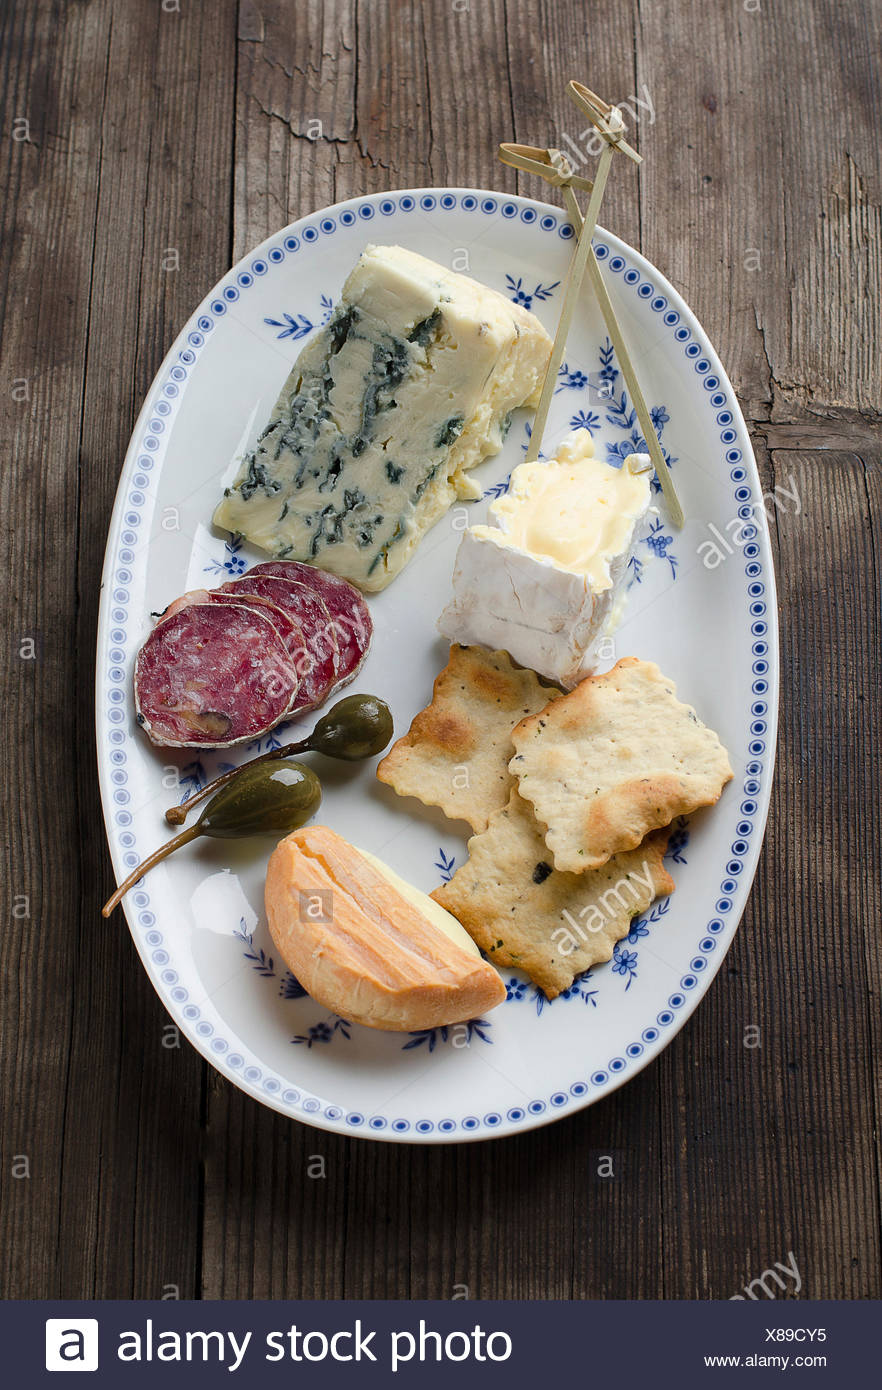 Assortment of fresh cheeses with salami, and crackers - Stock Image